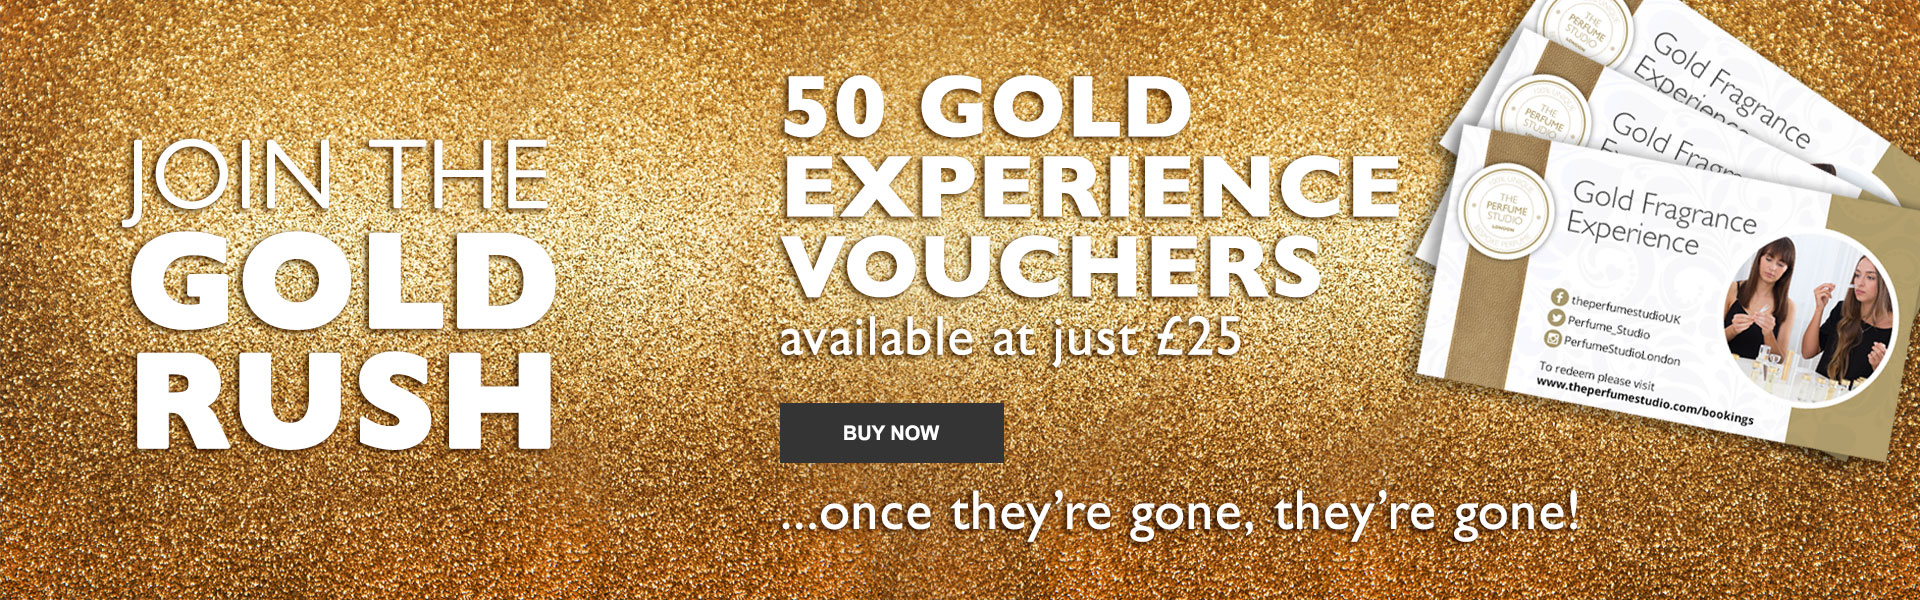 Join the Gold Rush. 50 Gold Experience Vouchers available at just £25